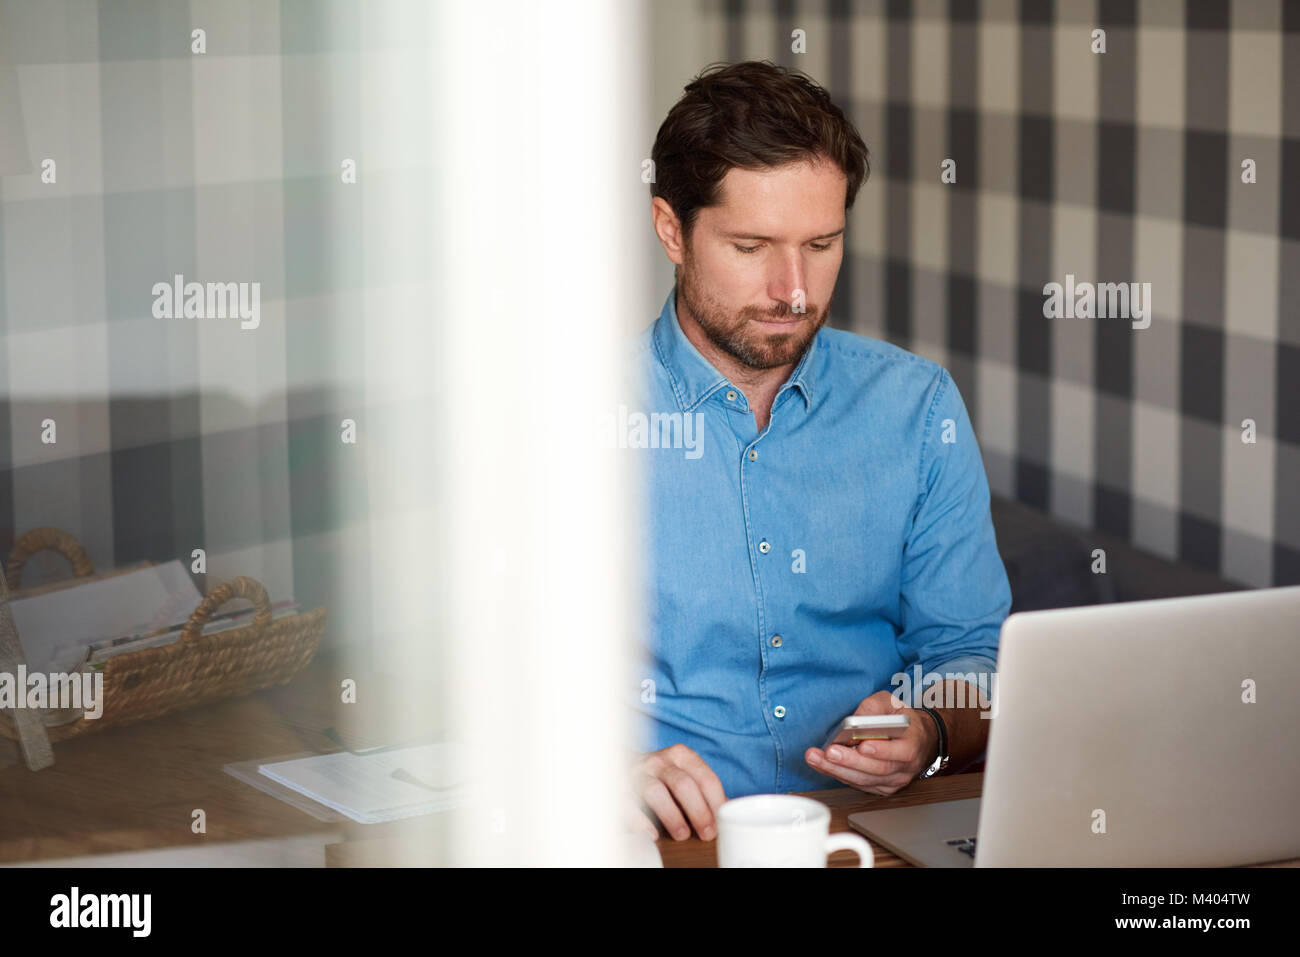 Young man reading text messages while working online from home - Stock Image